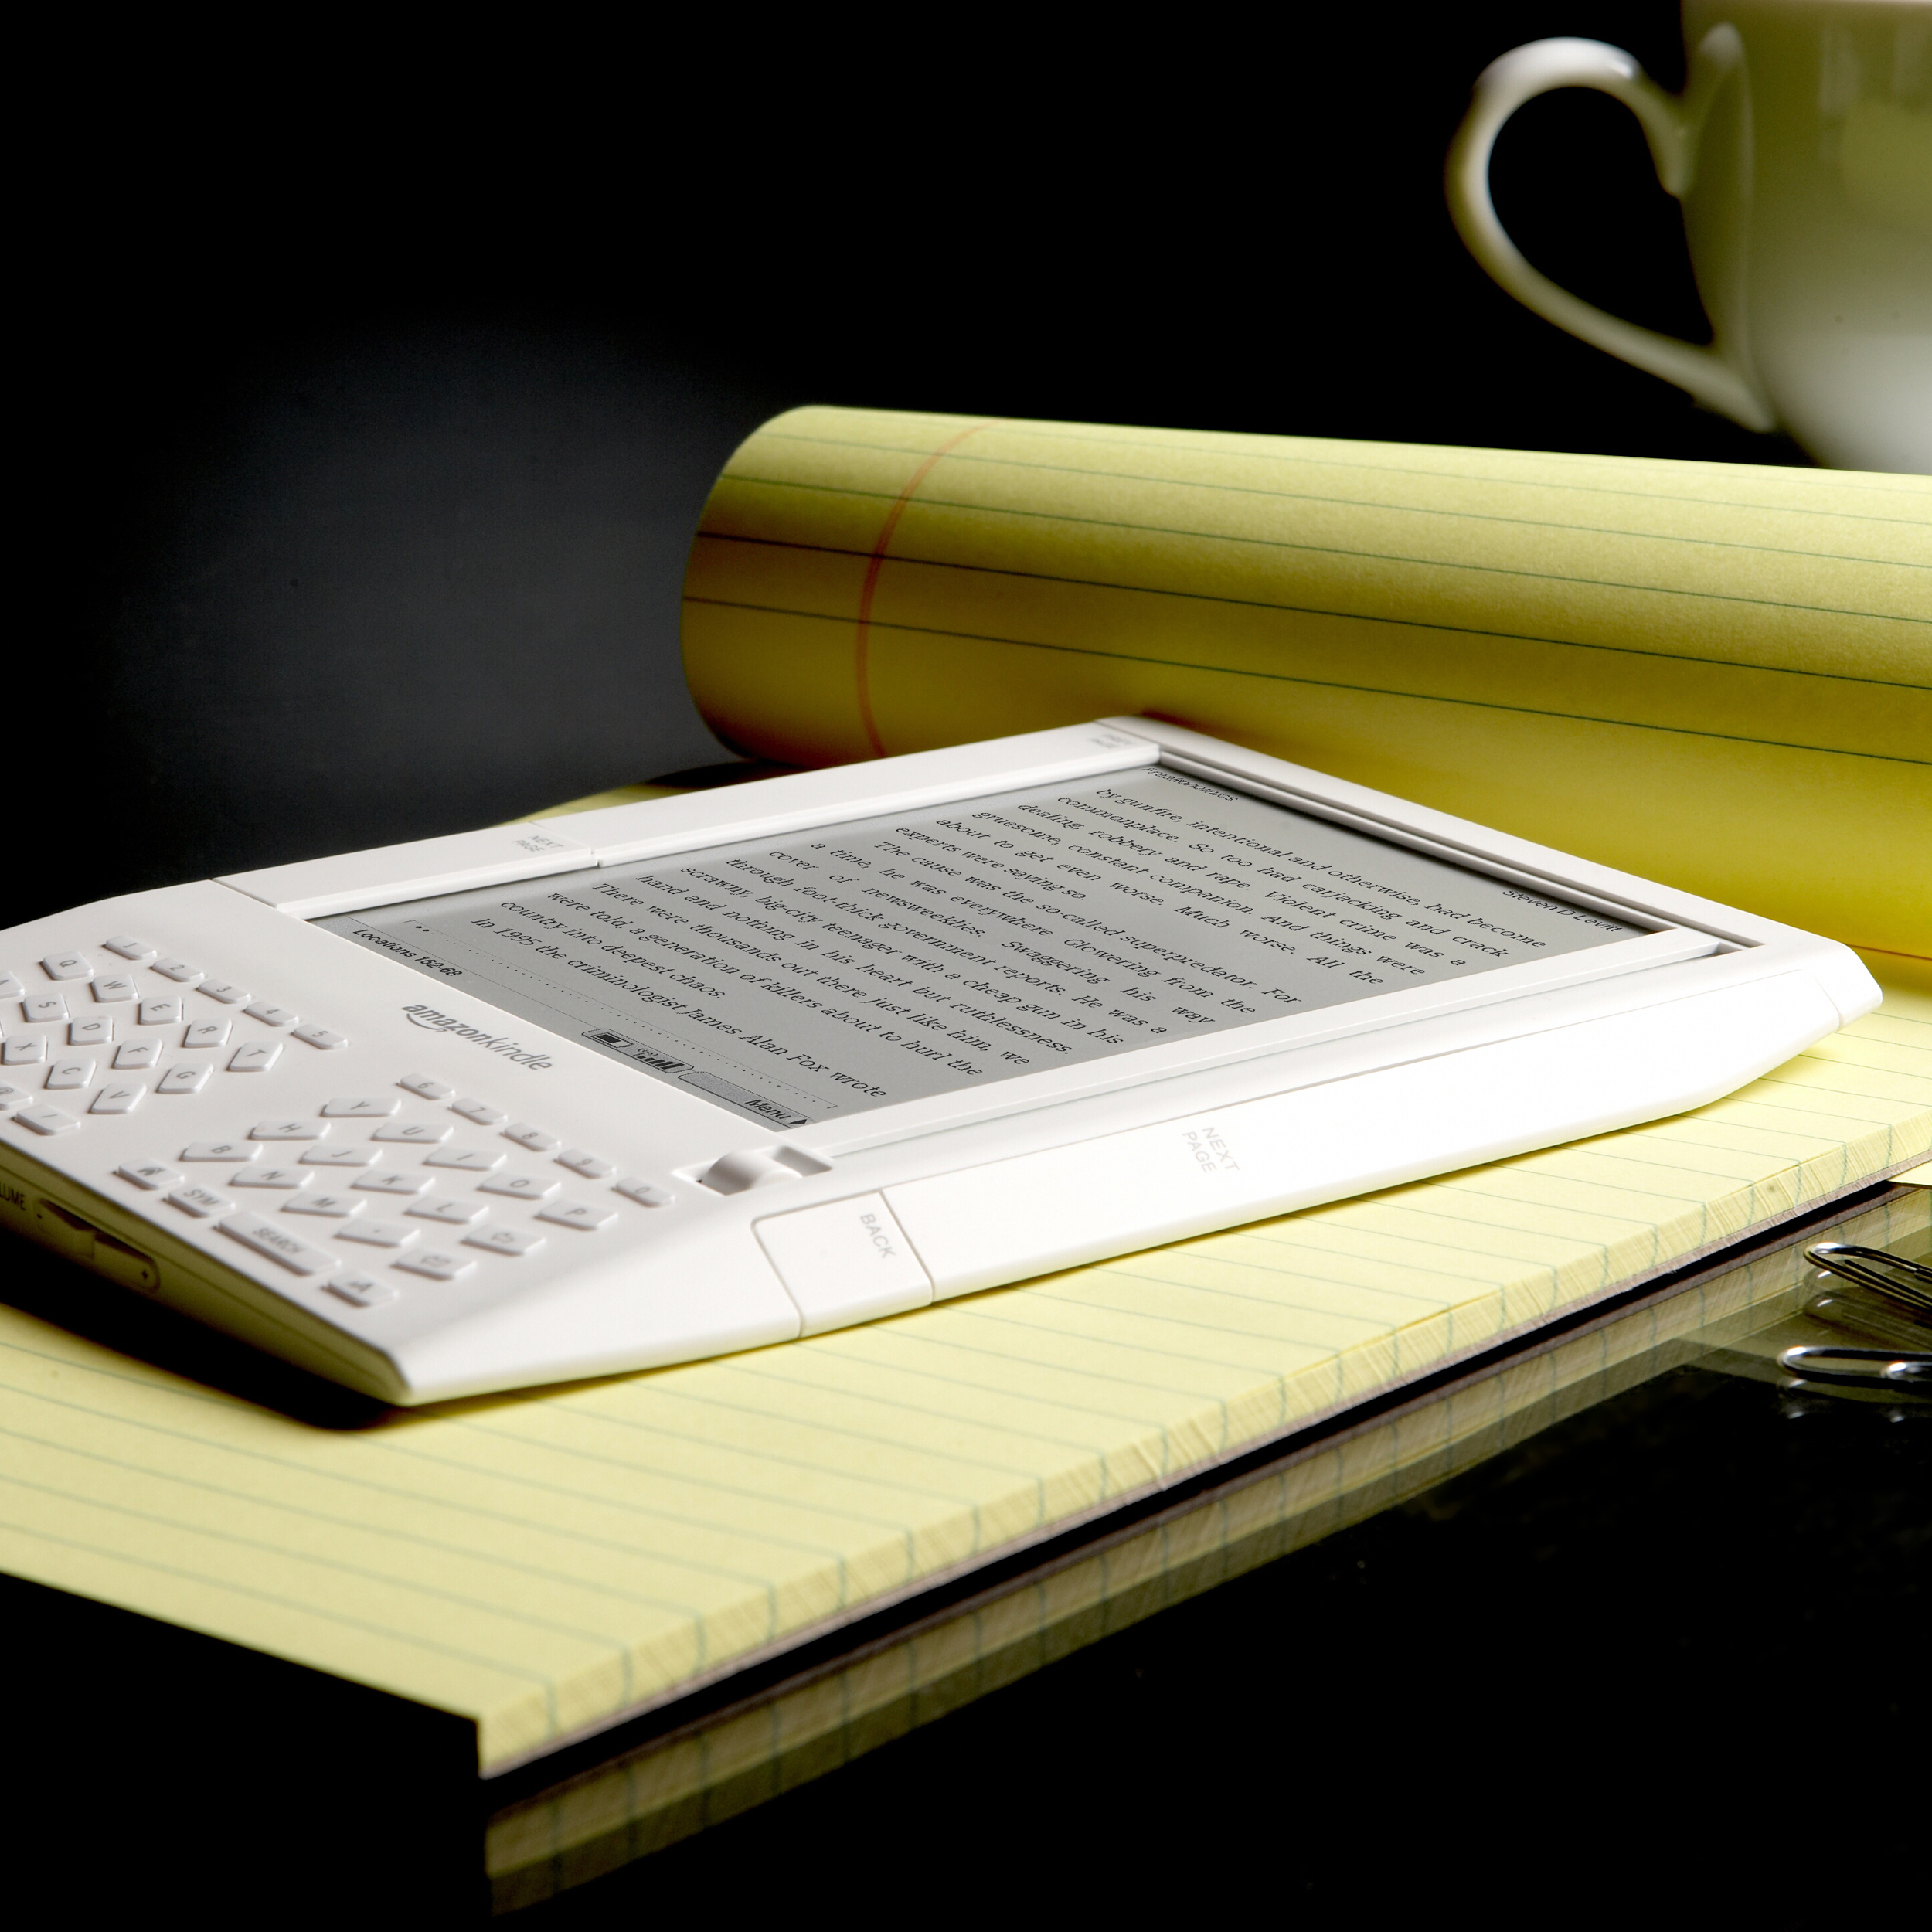 Amazon's Kindle e-book reader